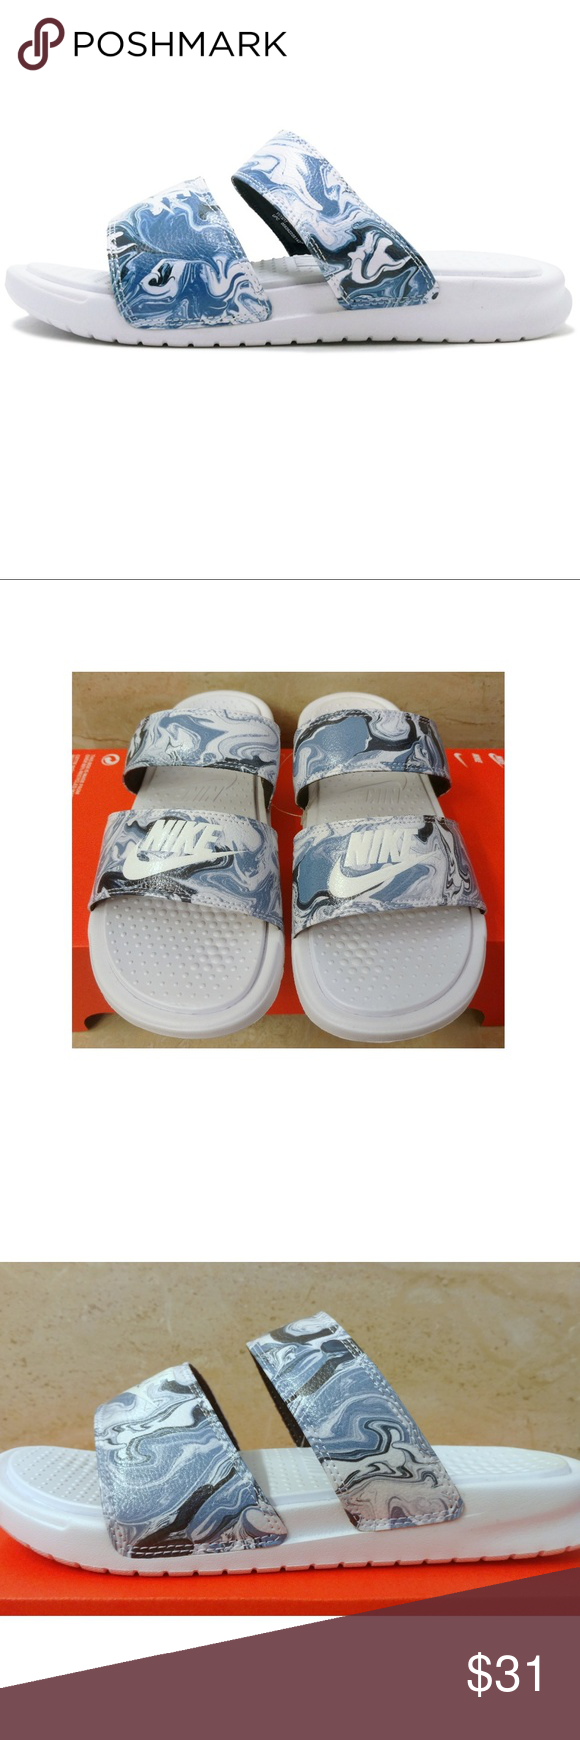 67b8a70ef732 Sz 7 Nike Benassi Duo Ultra Slide Comfort Sandals Condition  Brand new with  lidless box NWB Color  Blue   White Style  819717 002 Size  US Women s 7  Soft ...